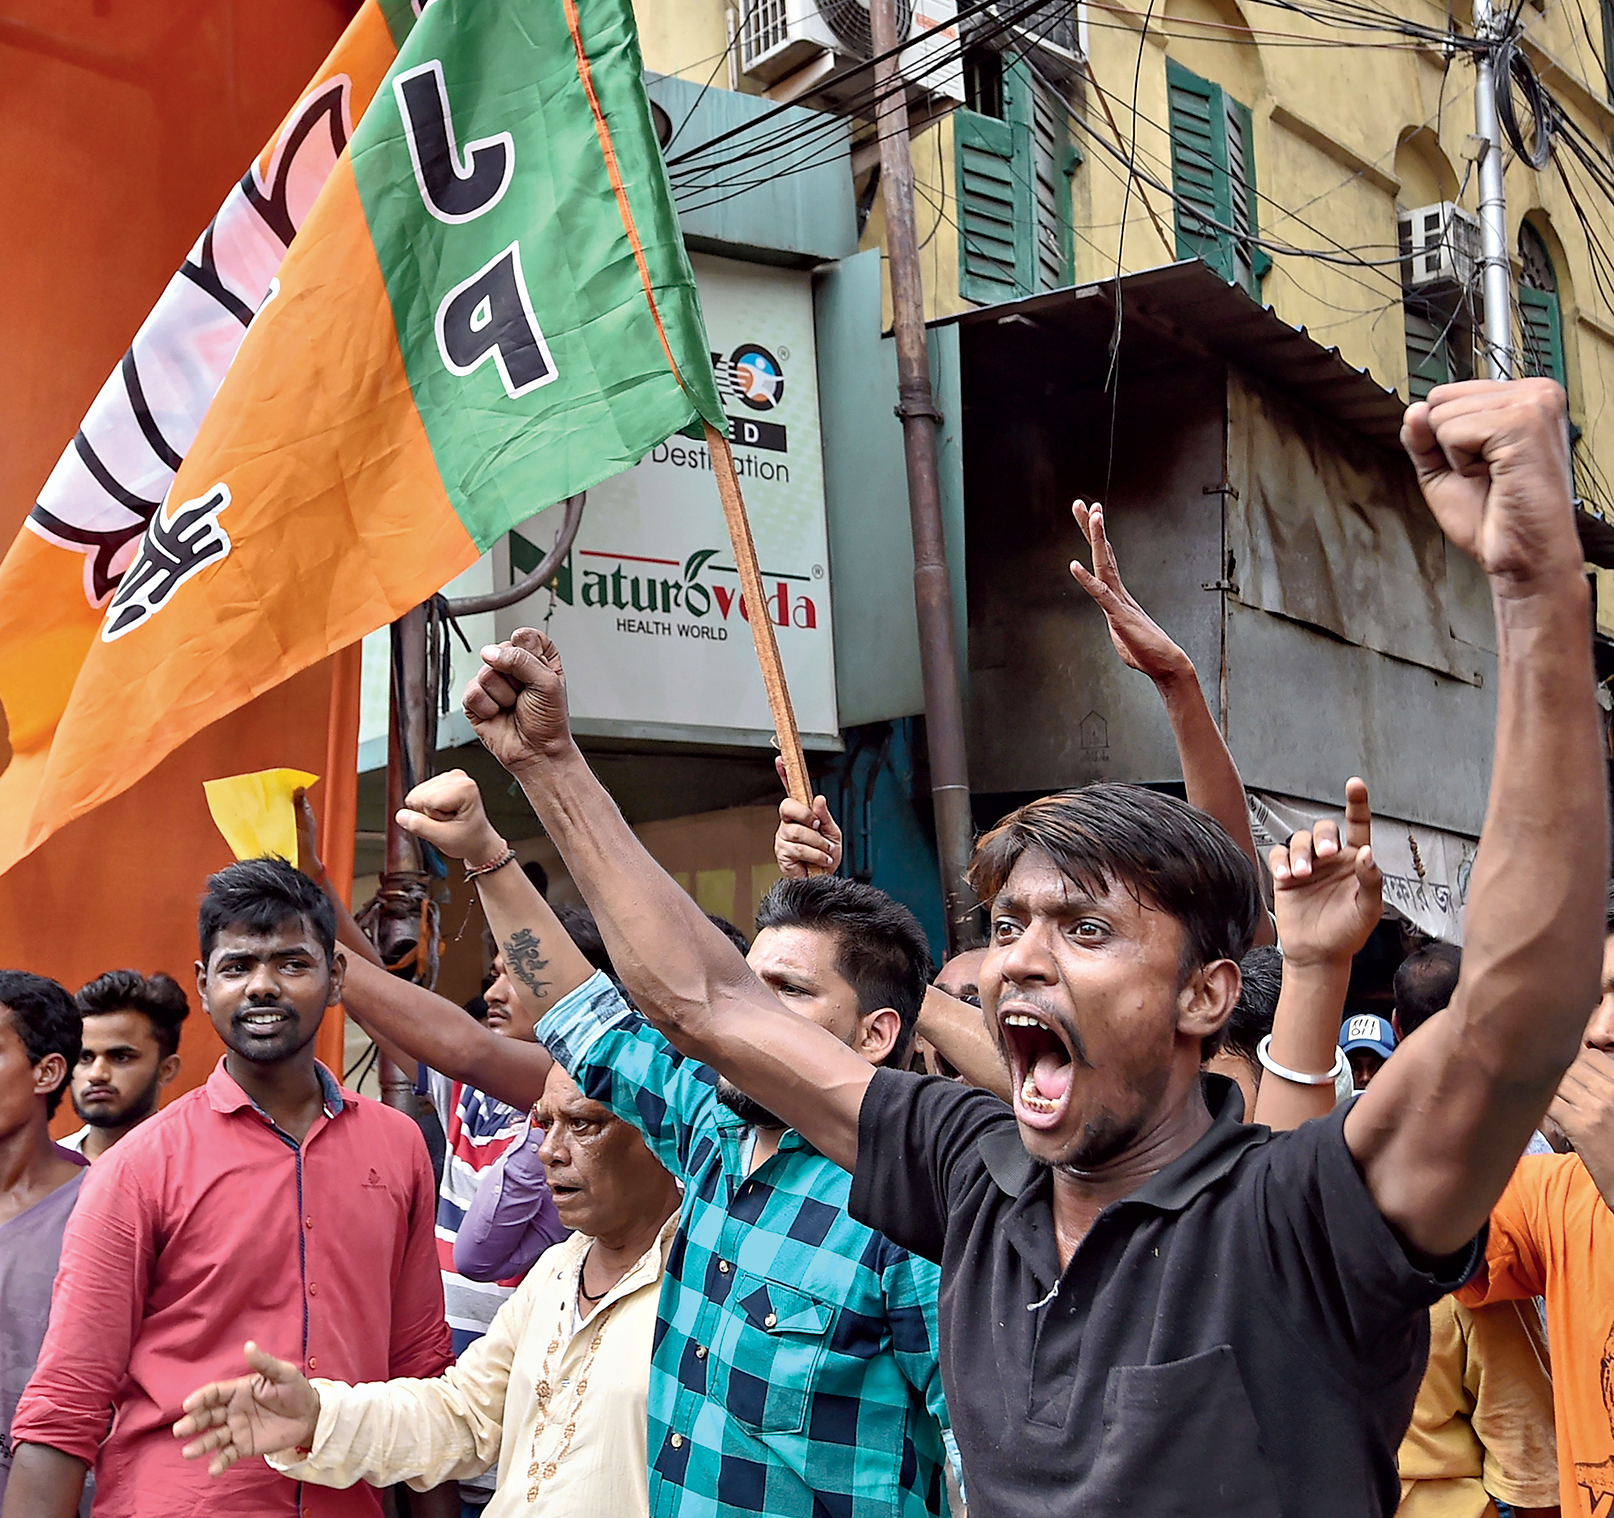 BJP supporters shout slogans during a protest in Calcutta on Sunday after the political murders in Sandeshkhali.